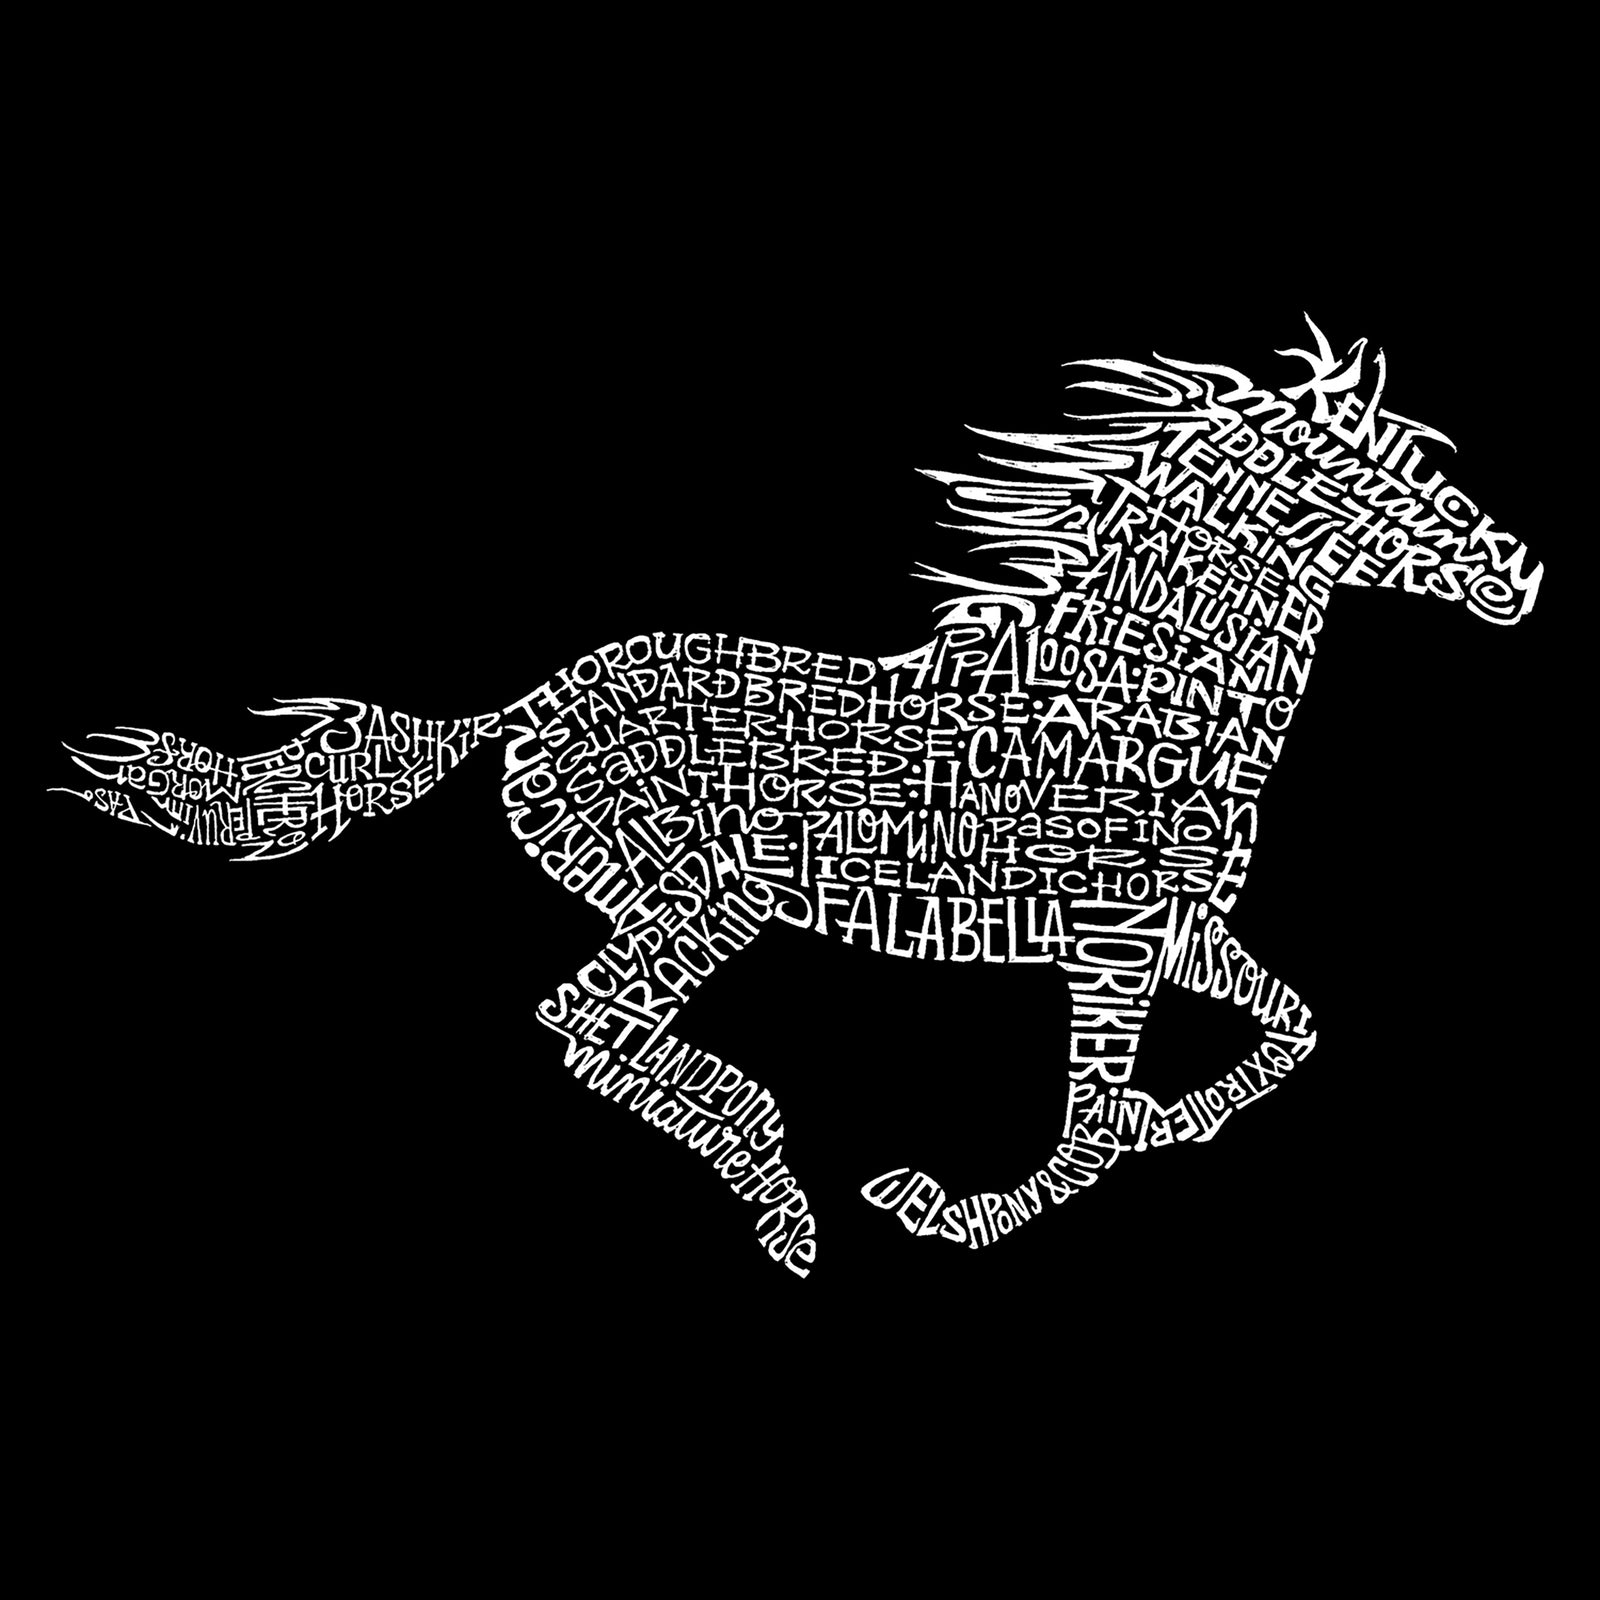 Women's Premium Blend Word Art T-shirt - Horse Breeds